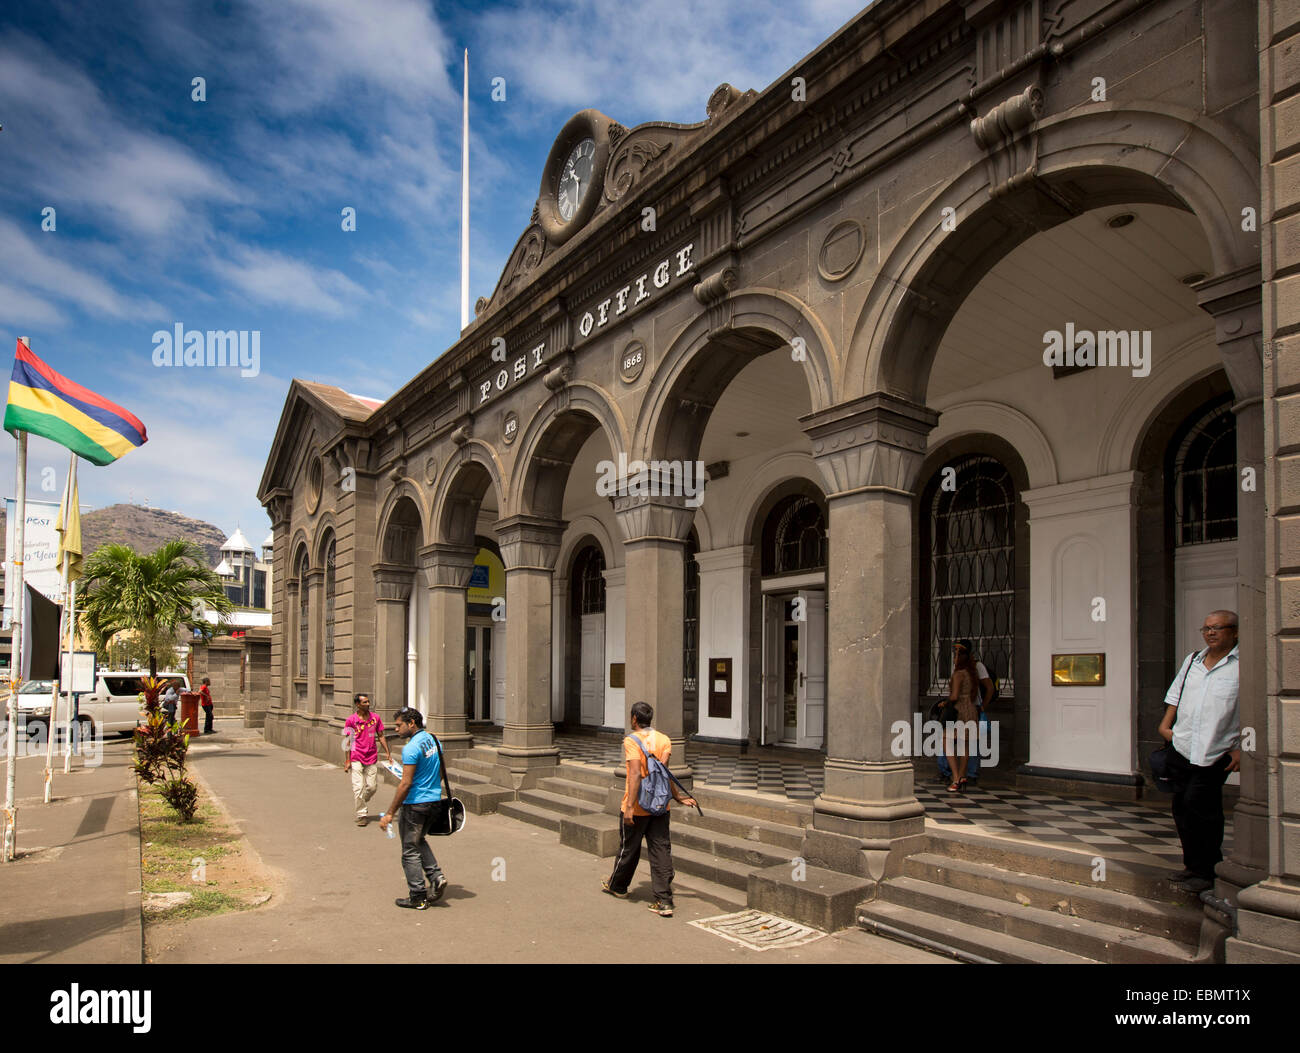 Indian Post Office Stock Photos & Indian Post Office Stock Images ...